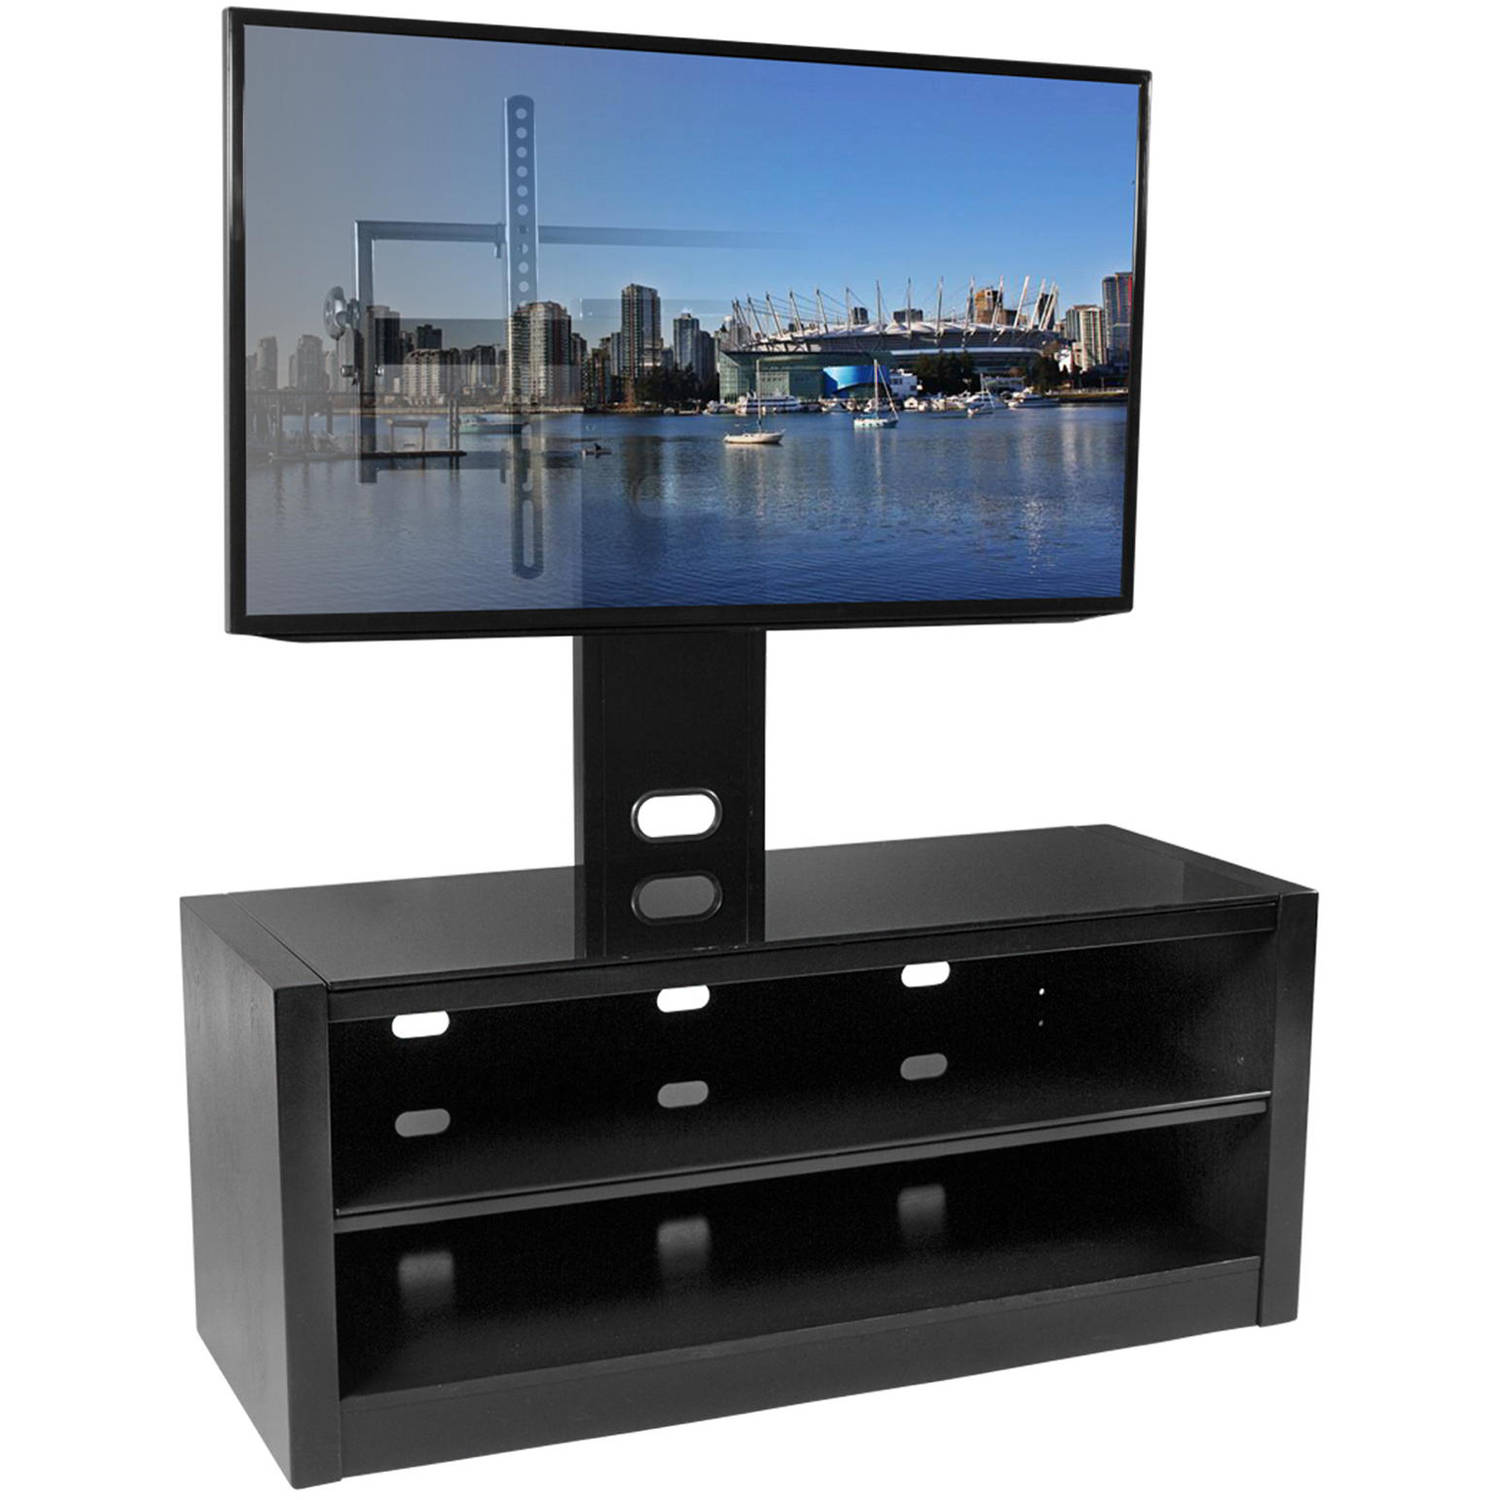 "Kanto MESA 46 Plus TV Stand with Tilt and Swivel Mount for Displays up to 80"", Black"